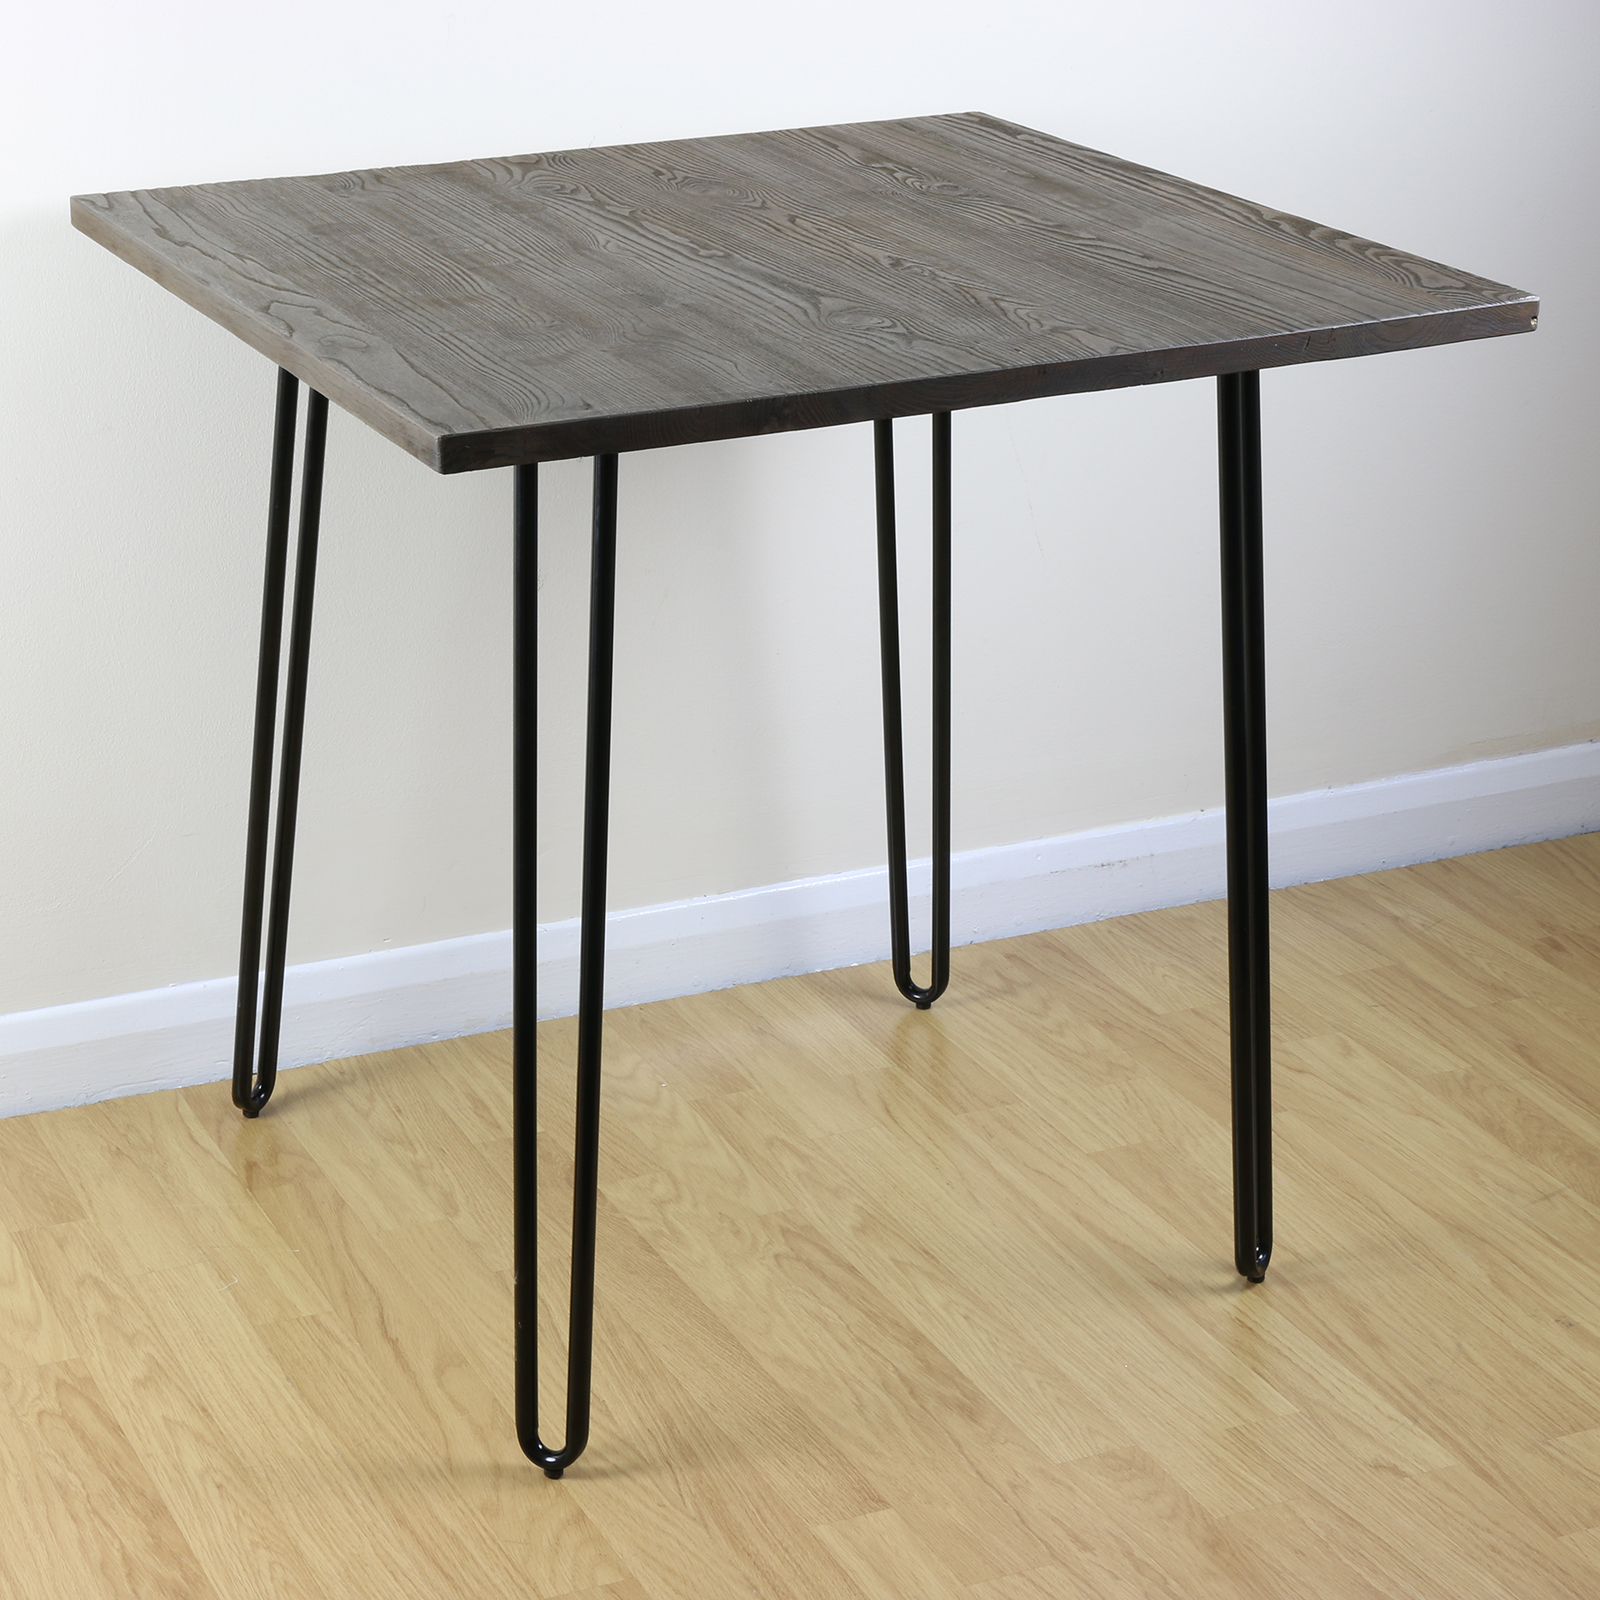 sale hairpin pin leg wood top black square industrial kitchen dining table ebay. Black Bedroom Furniture Sets. Home Design Ideas